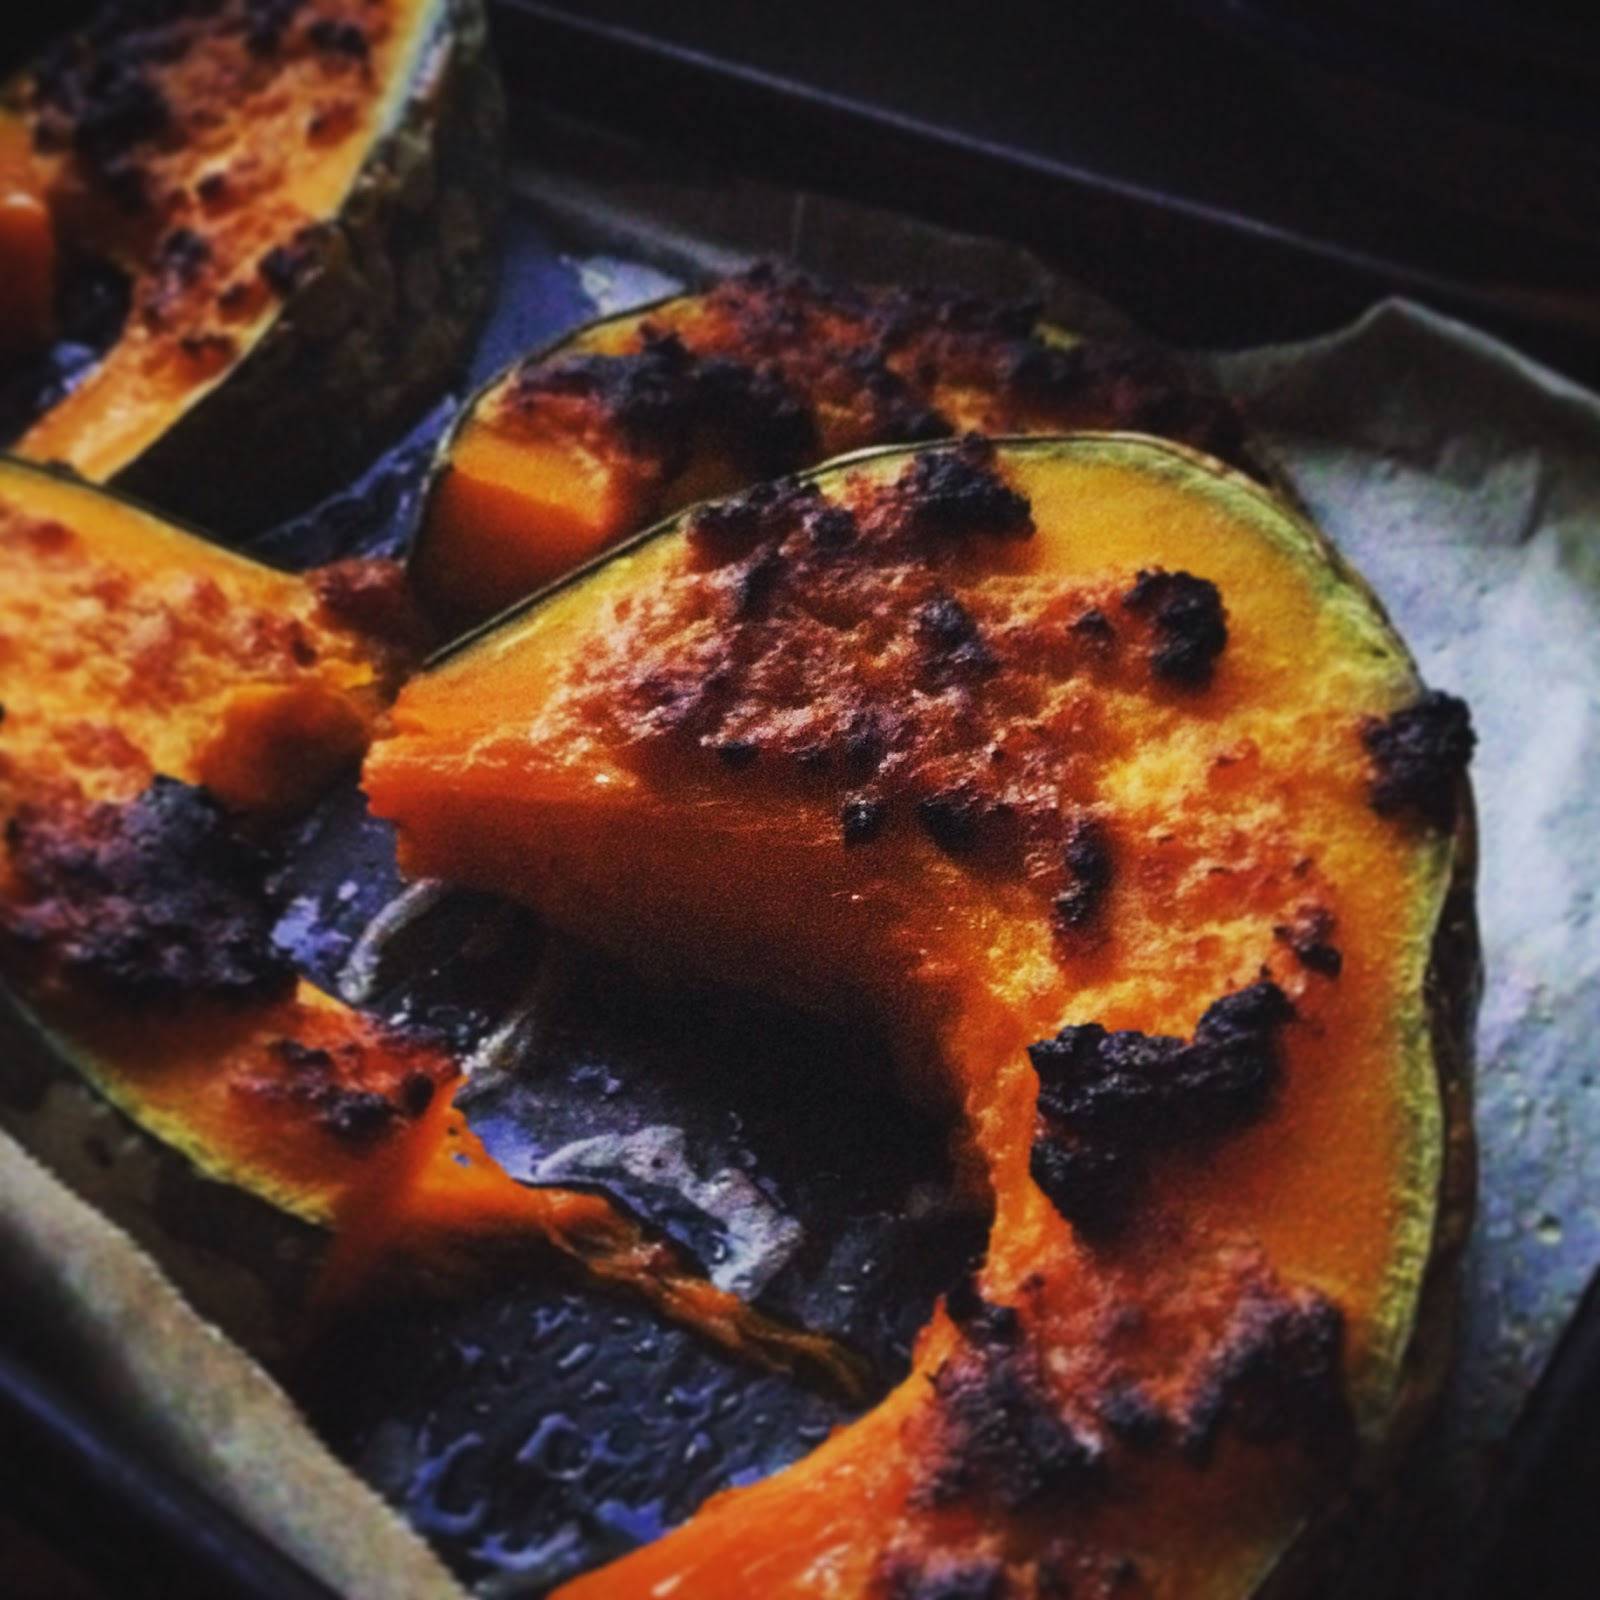 Miso-Roasted-Pumpkin The Kitchenmaid/Lucy Corry